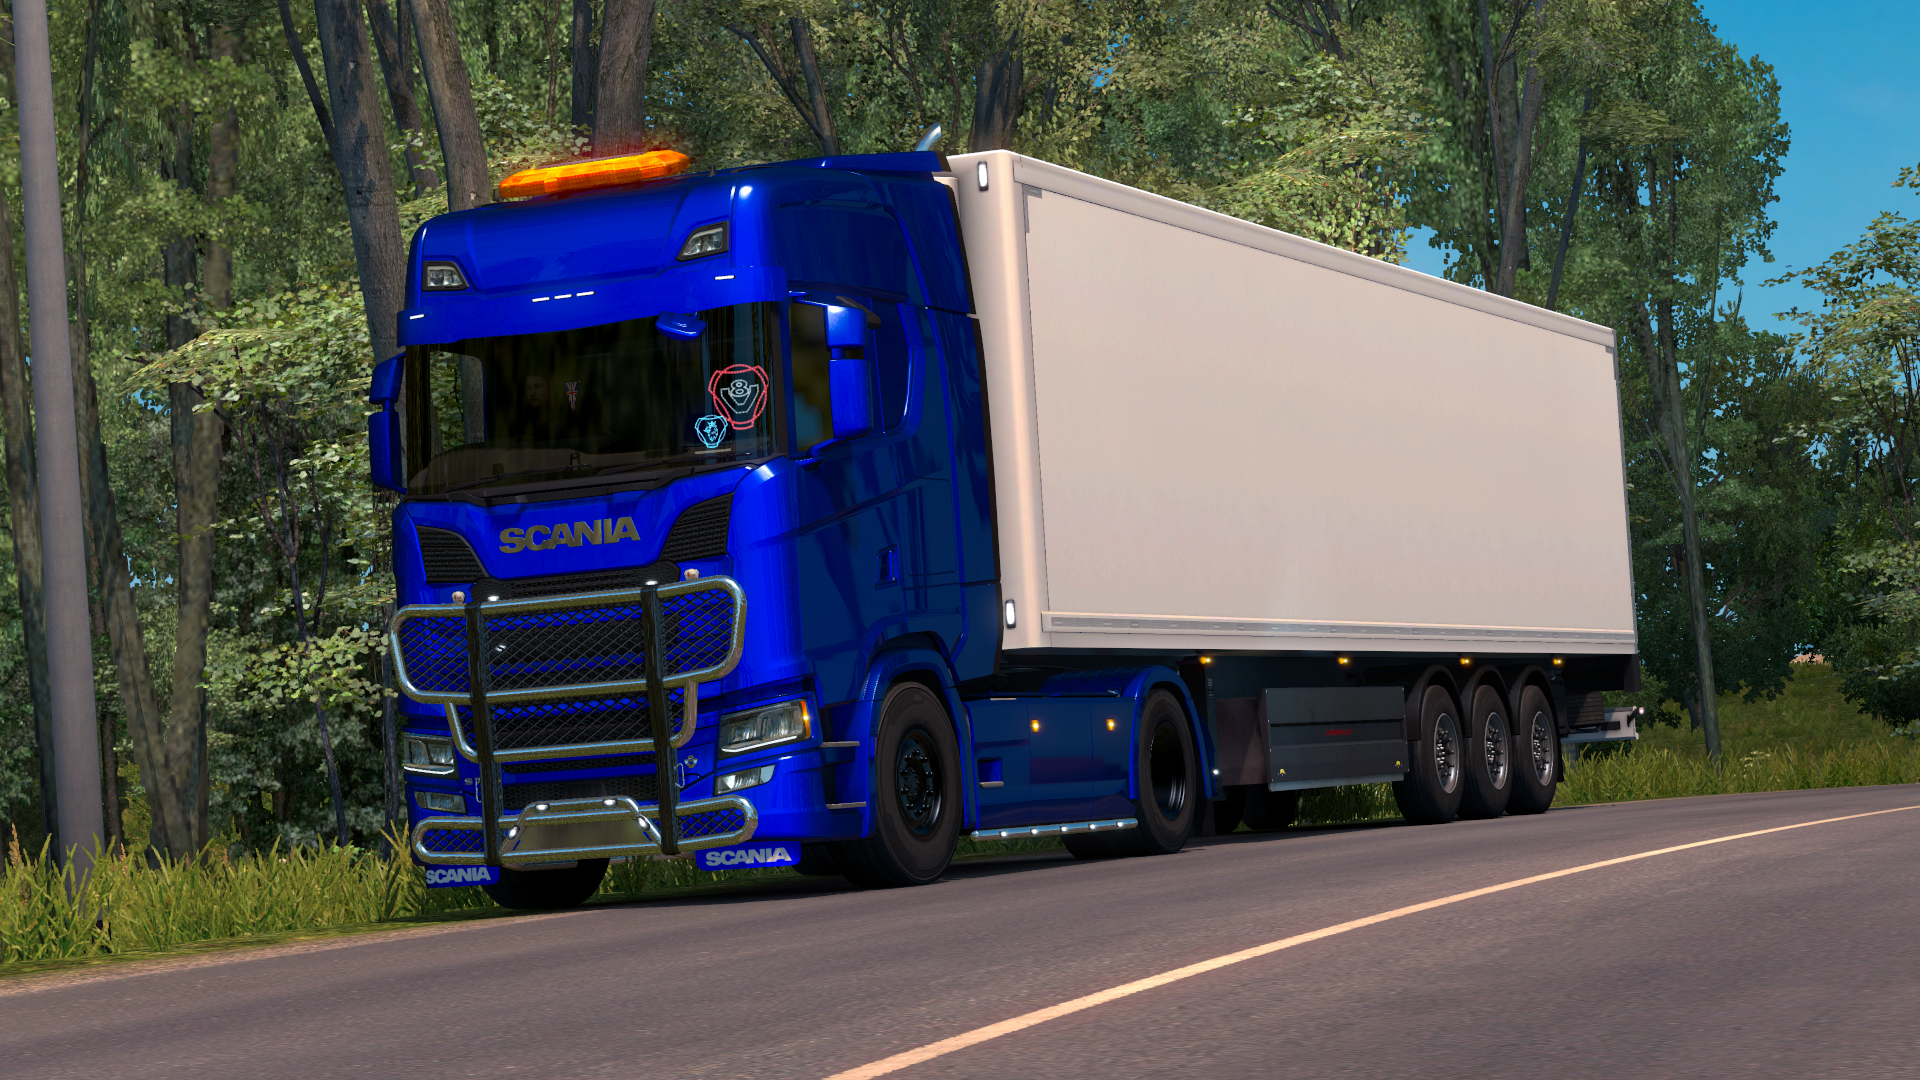 ets2_20180711_183340_00.png